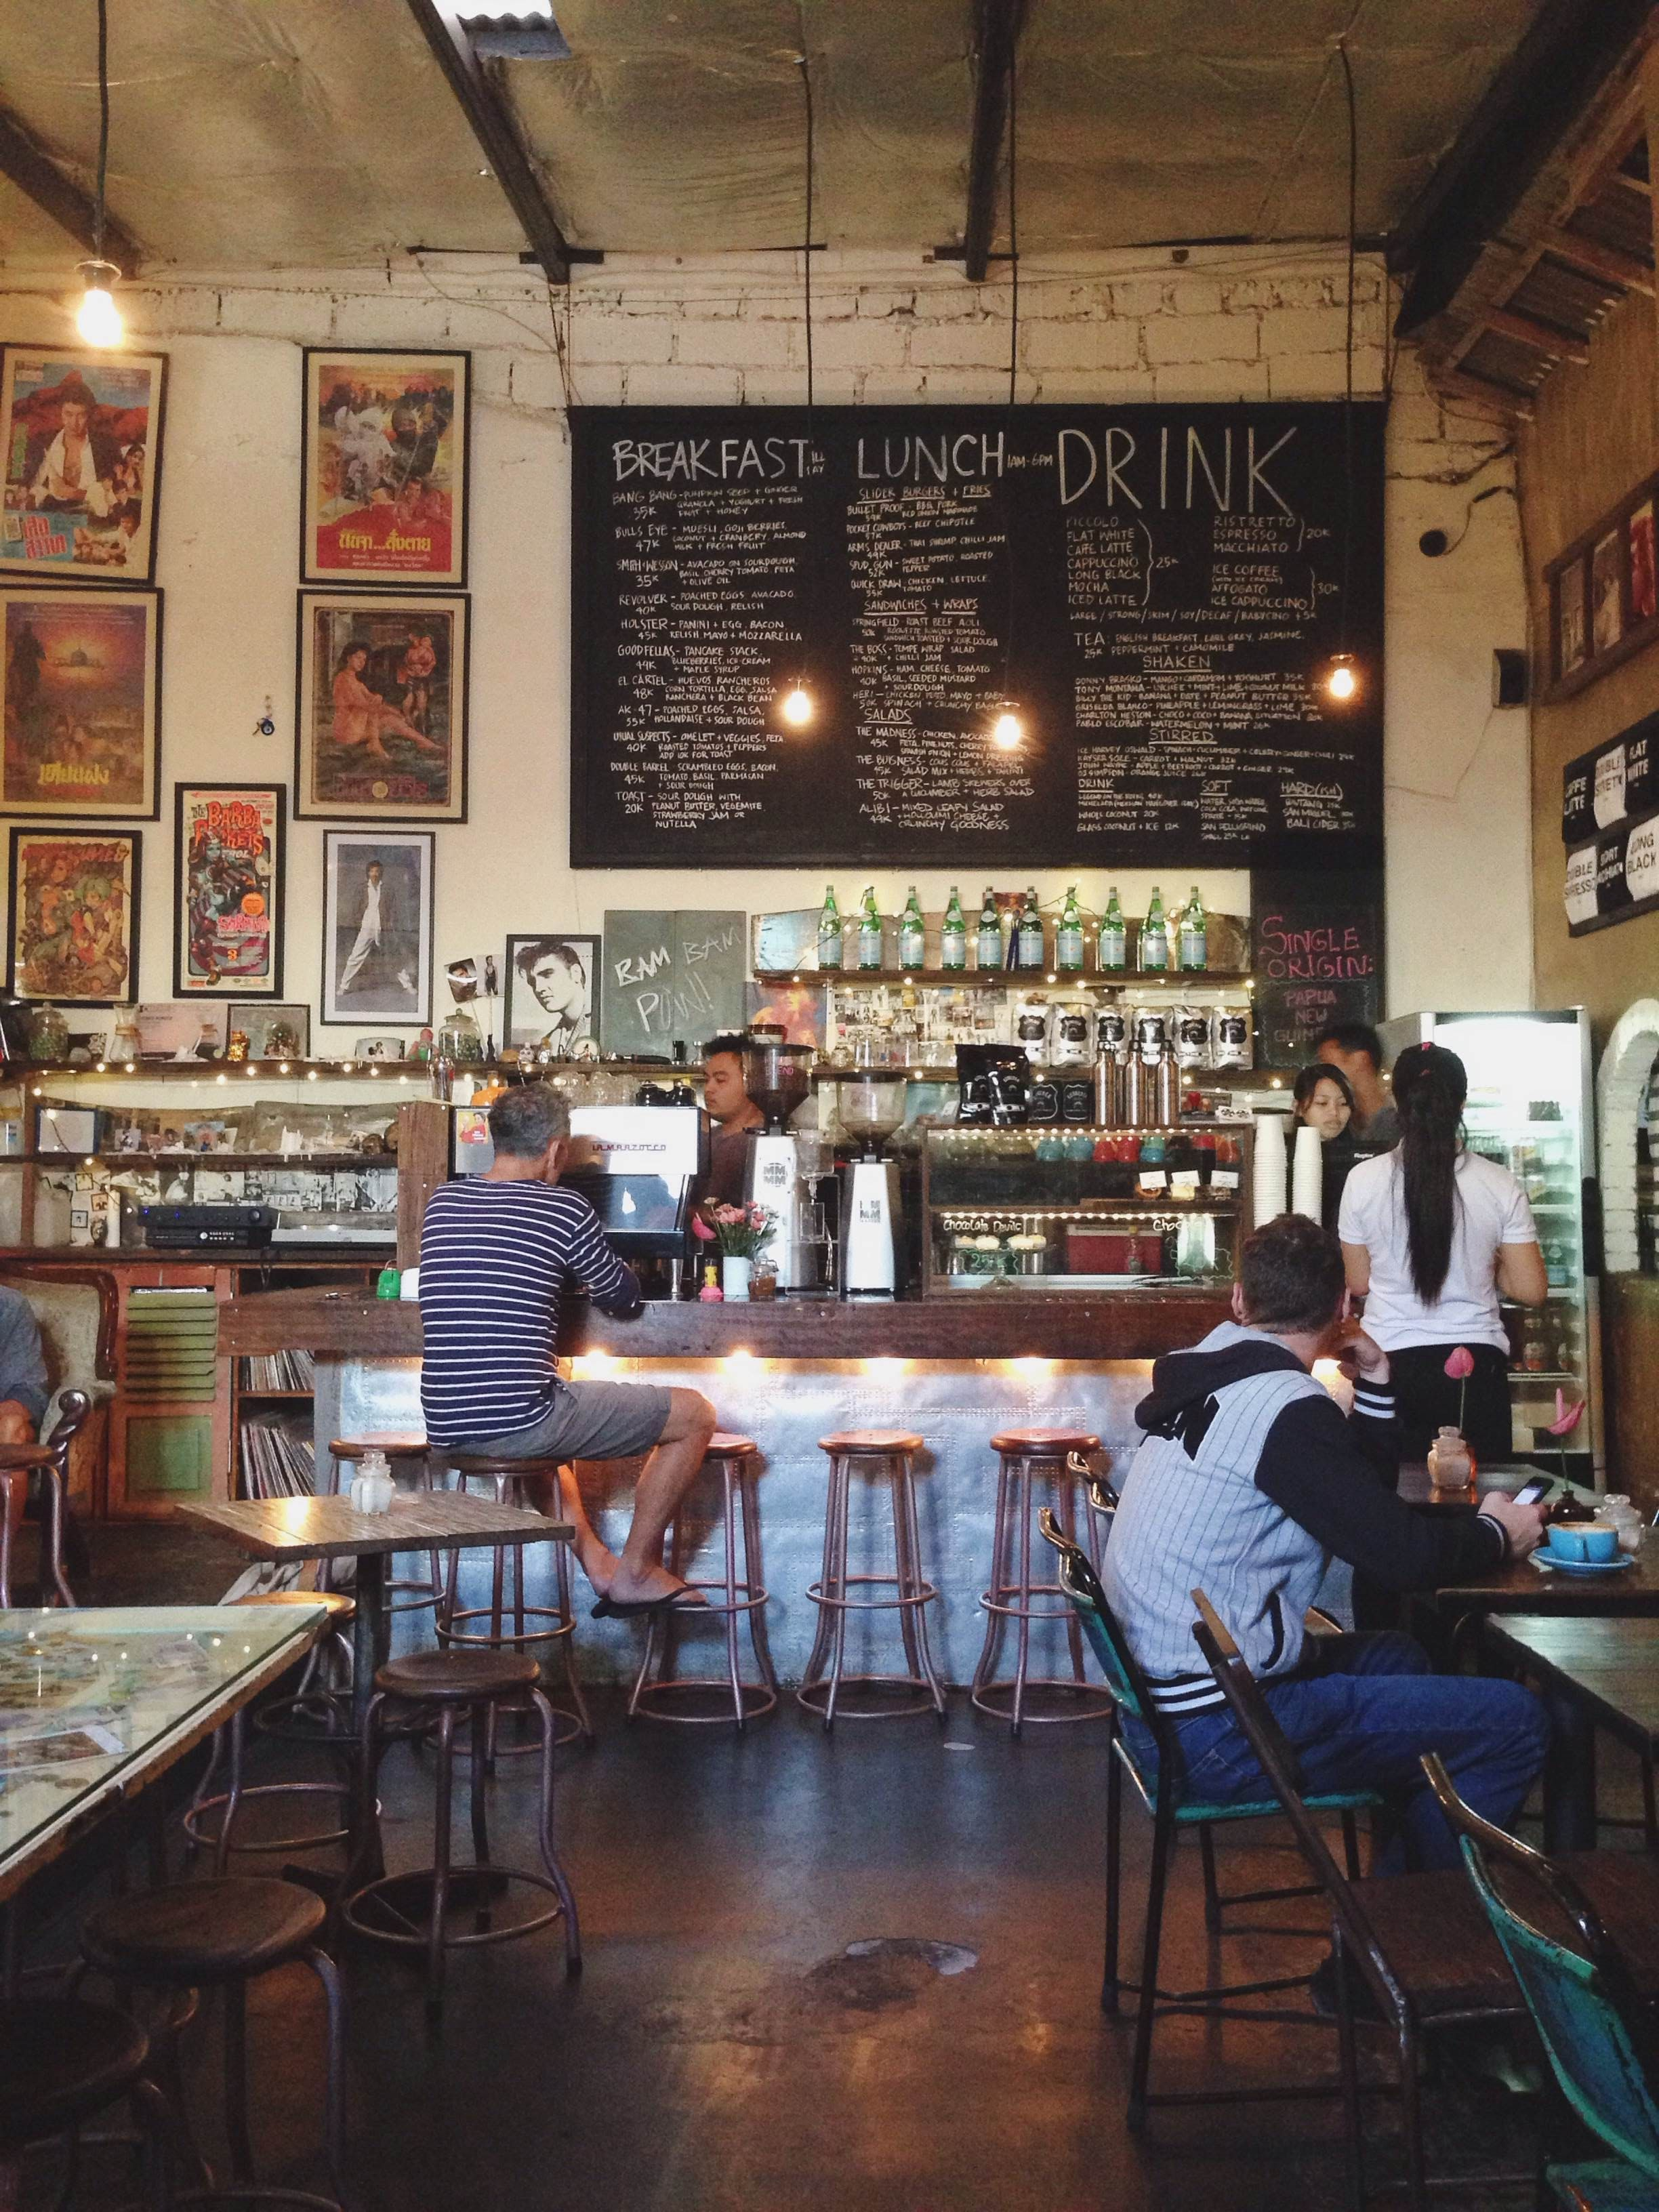 Coffee Shop Revolver Espresso Bali Cafe Shop Pinterest